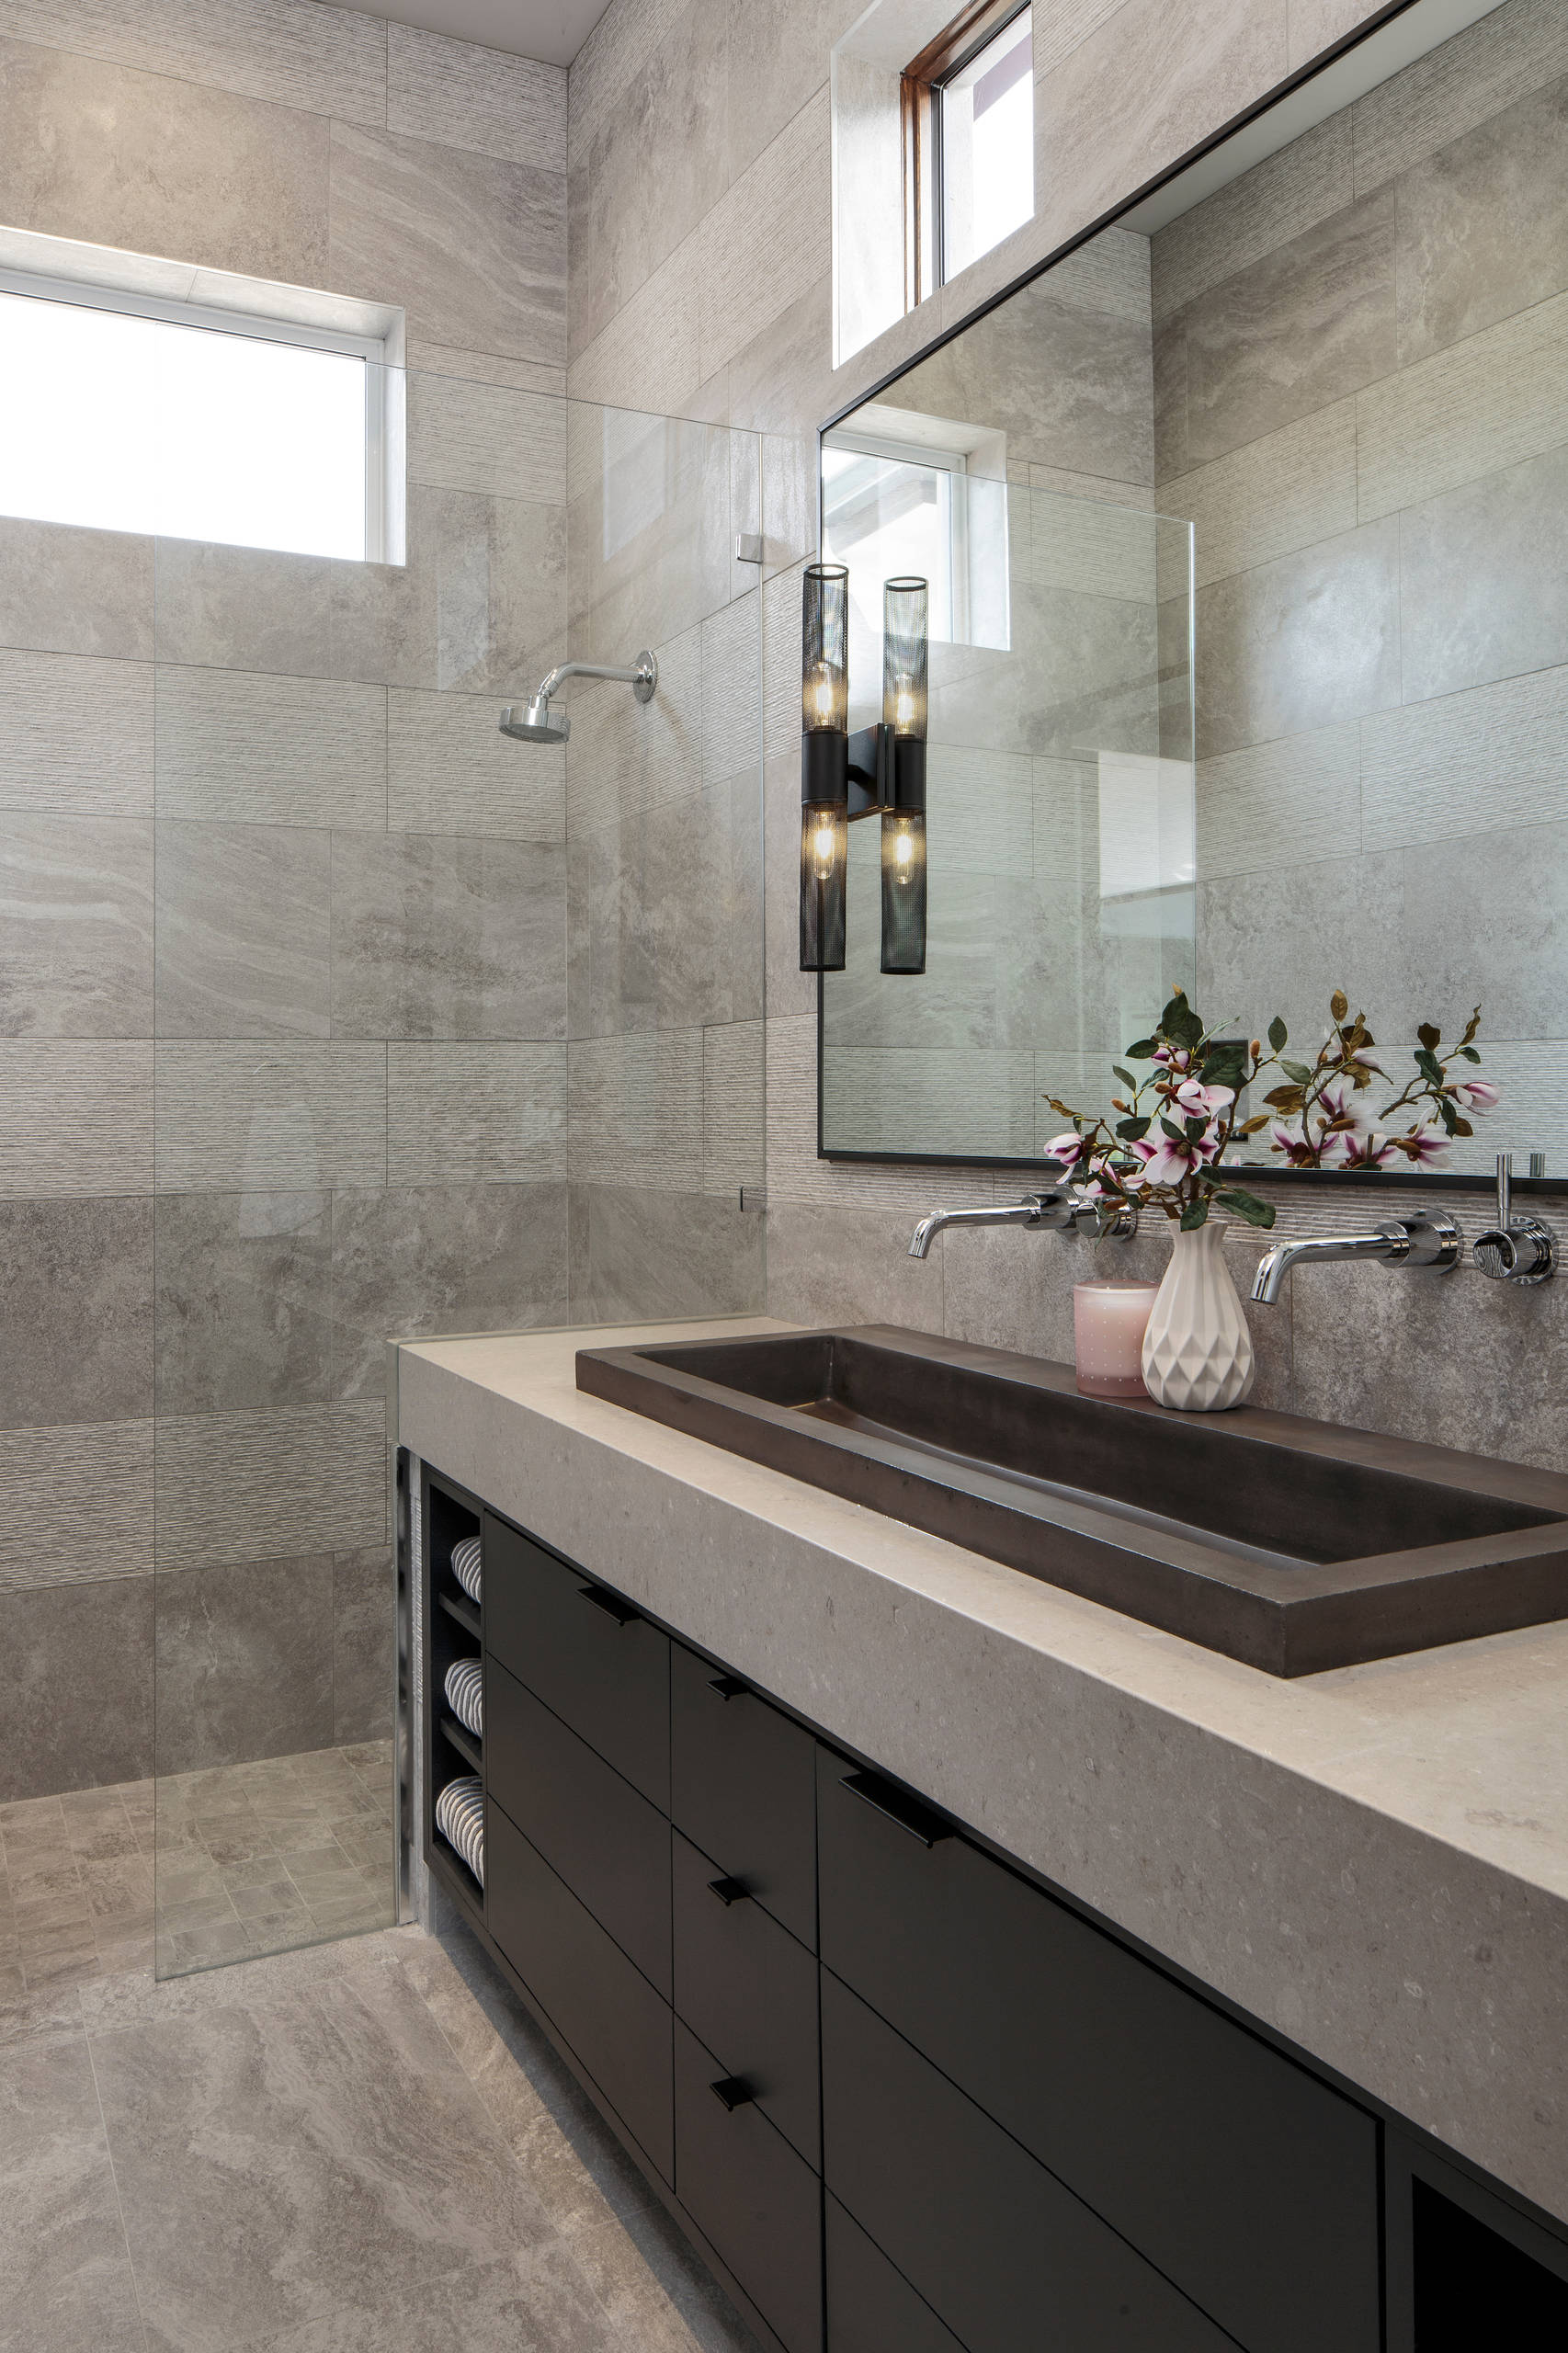 75 Beautiful Modern Bathroom Pictures Ideas November 2020 Houzz